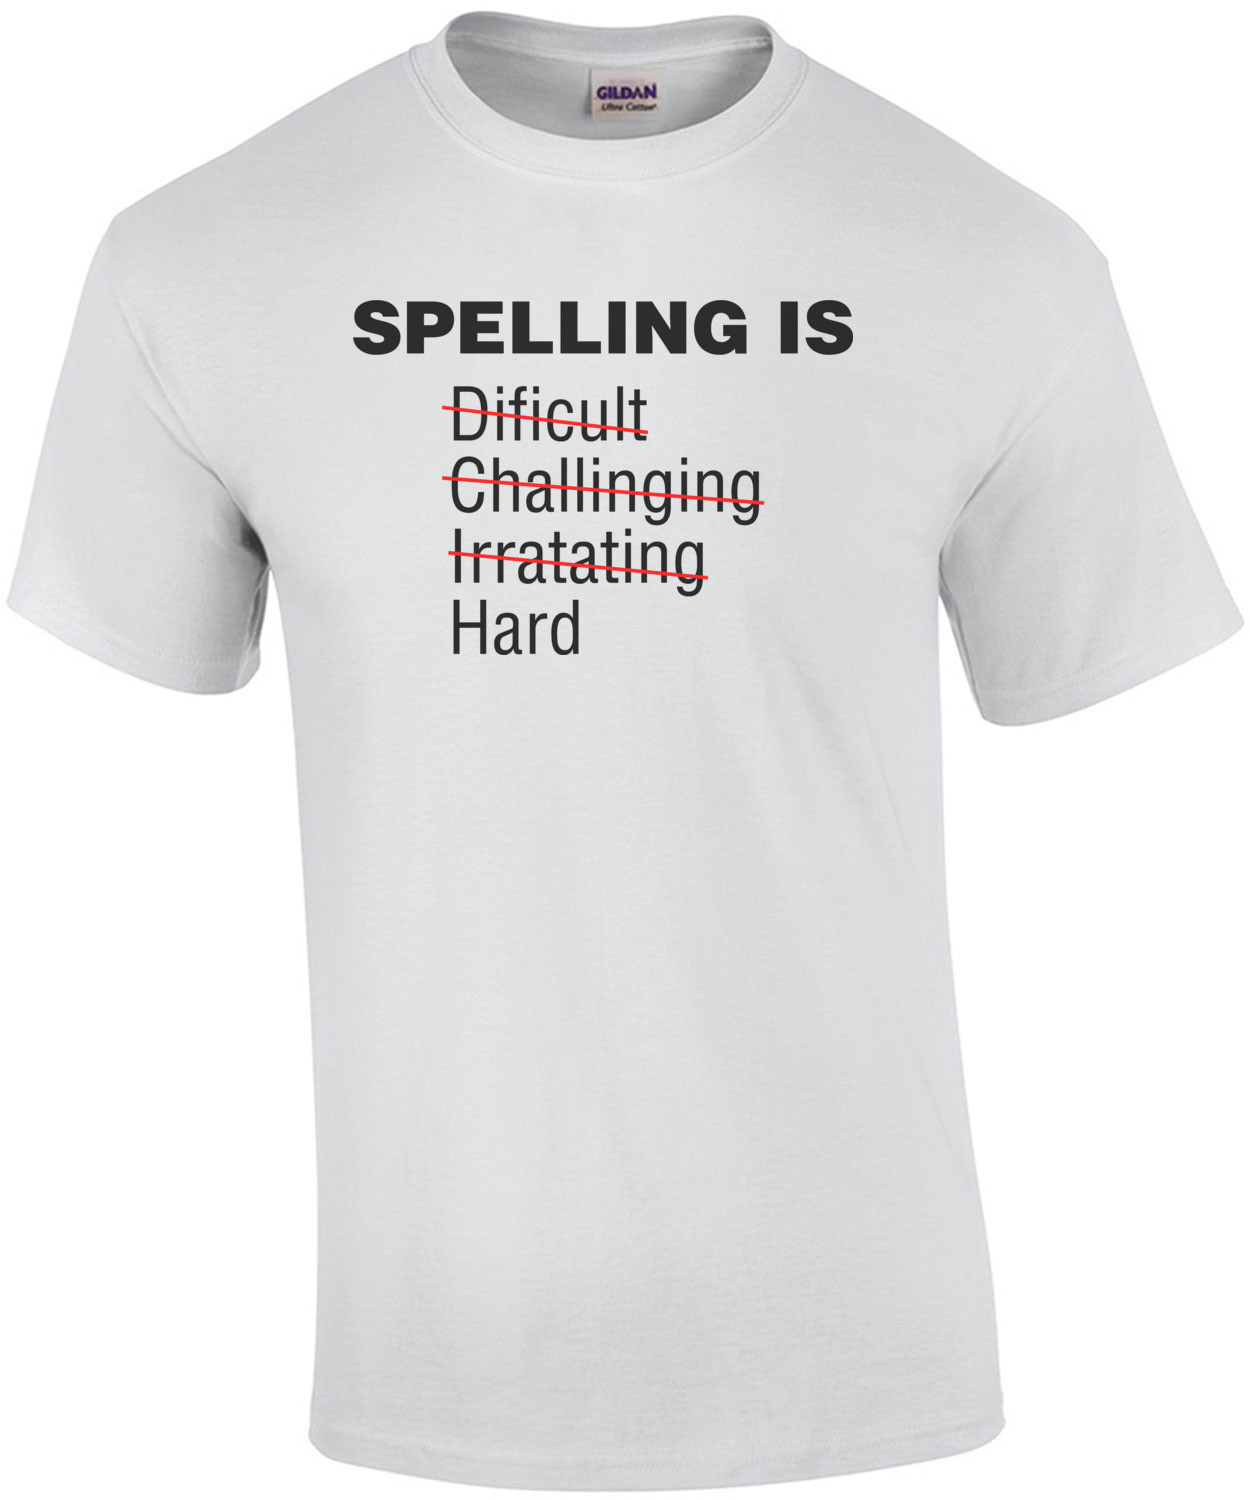 Spelling Is Dificult... - Funny